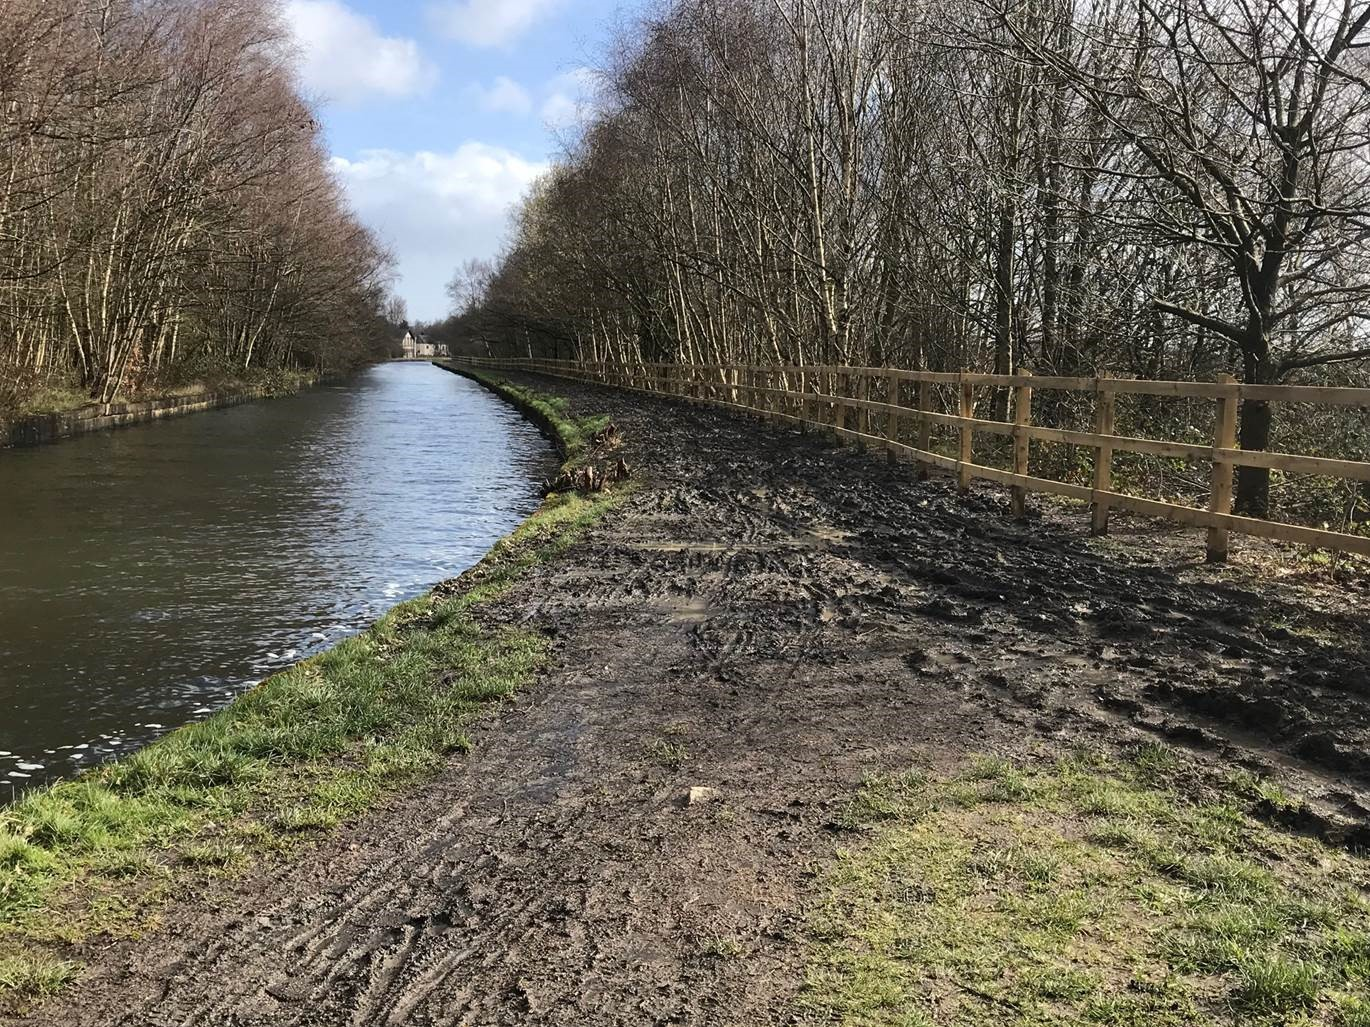 Bridgewater Canal towpath in Wigan before any improvements were made